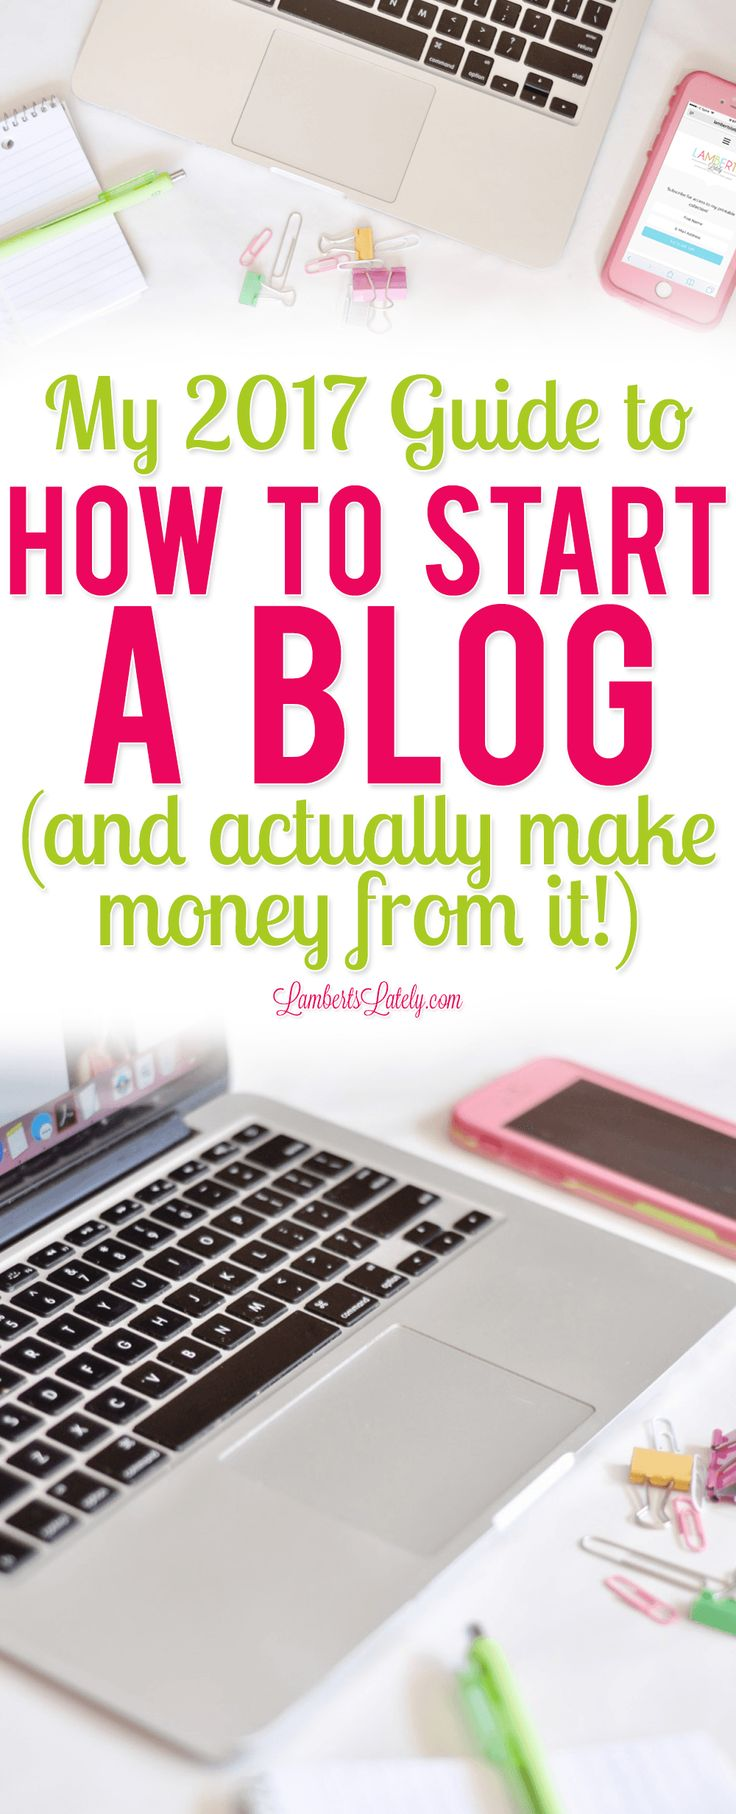 how to start a blog and make money 2017 || wordpress for beginners || step by step tutorial and plugin hosting ideas || mommy blog || profitable blog inspiration || starting a blogging business